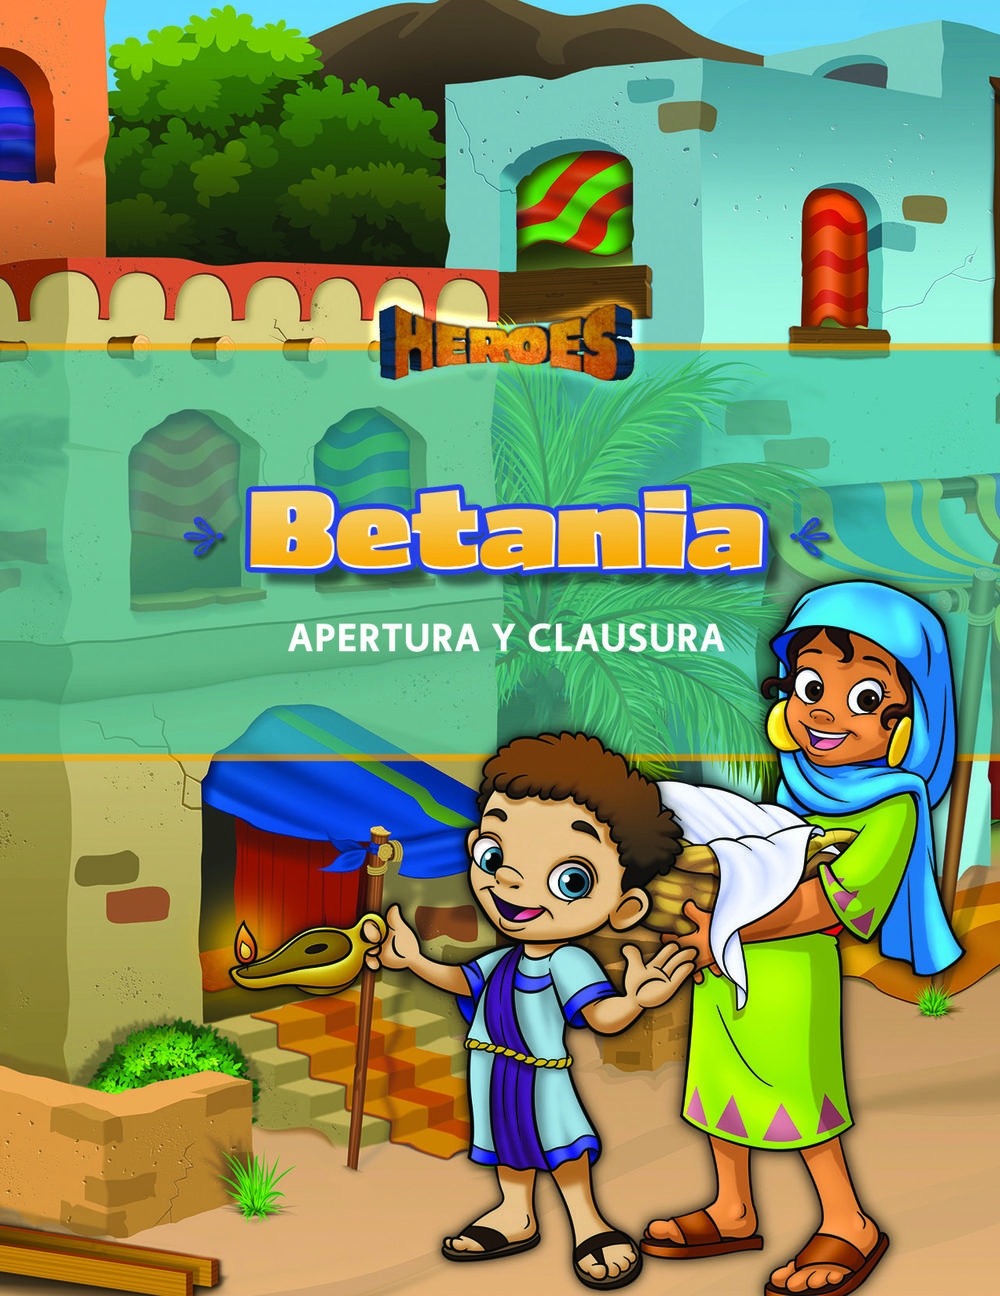 Heroes VBS Bethany Opening & Closing Program Guide (Spanish)